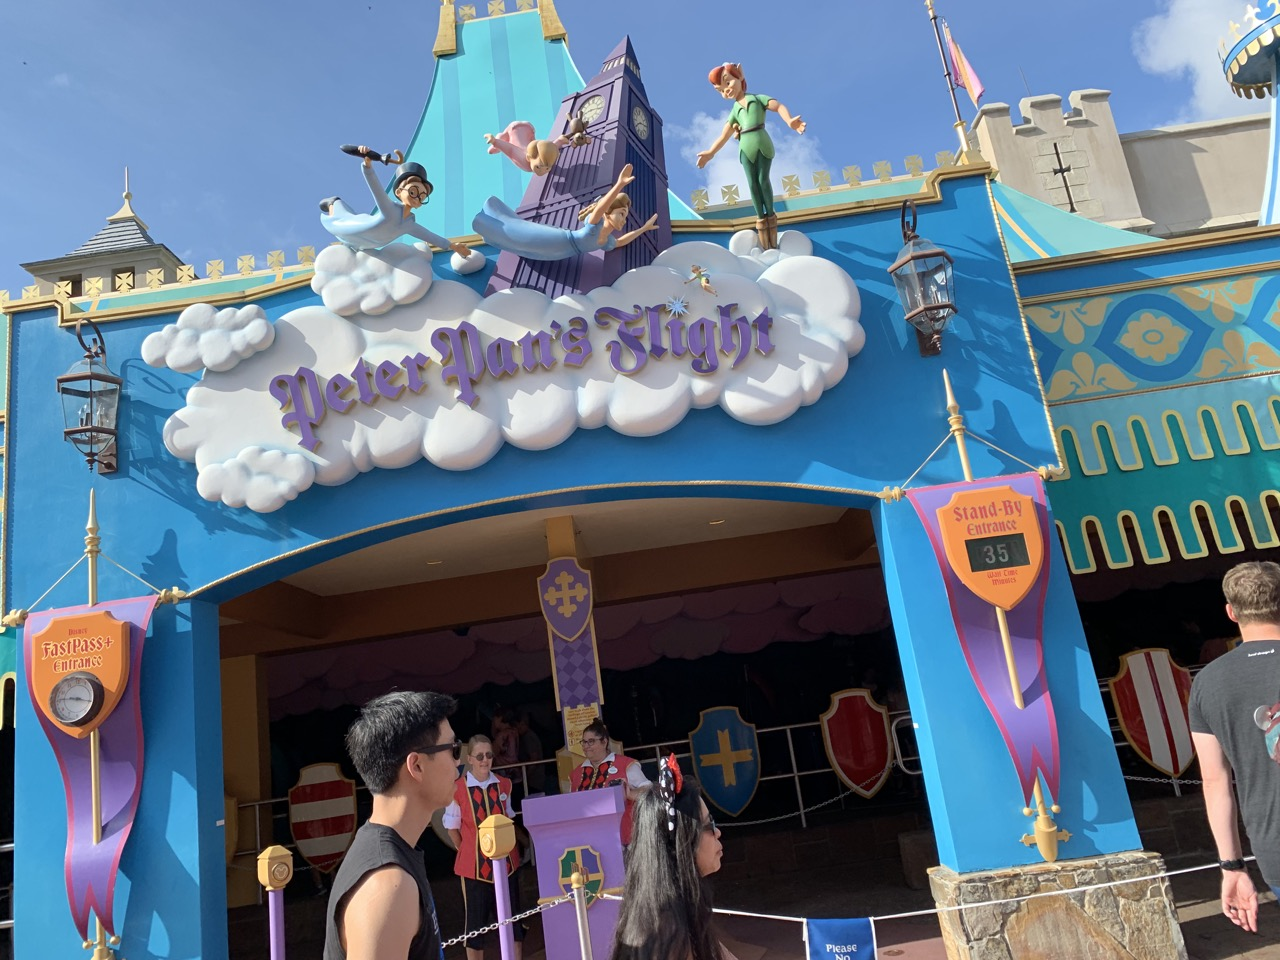 20 minutes into the day, Peter Pan at 35 minutes